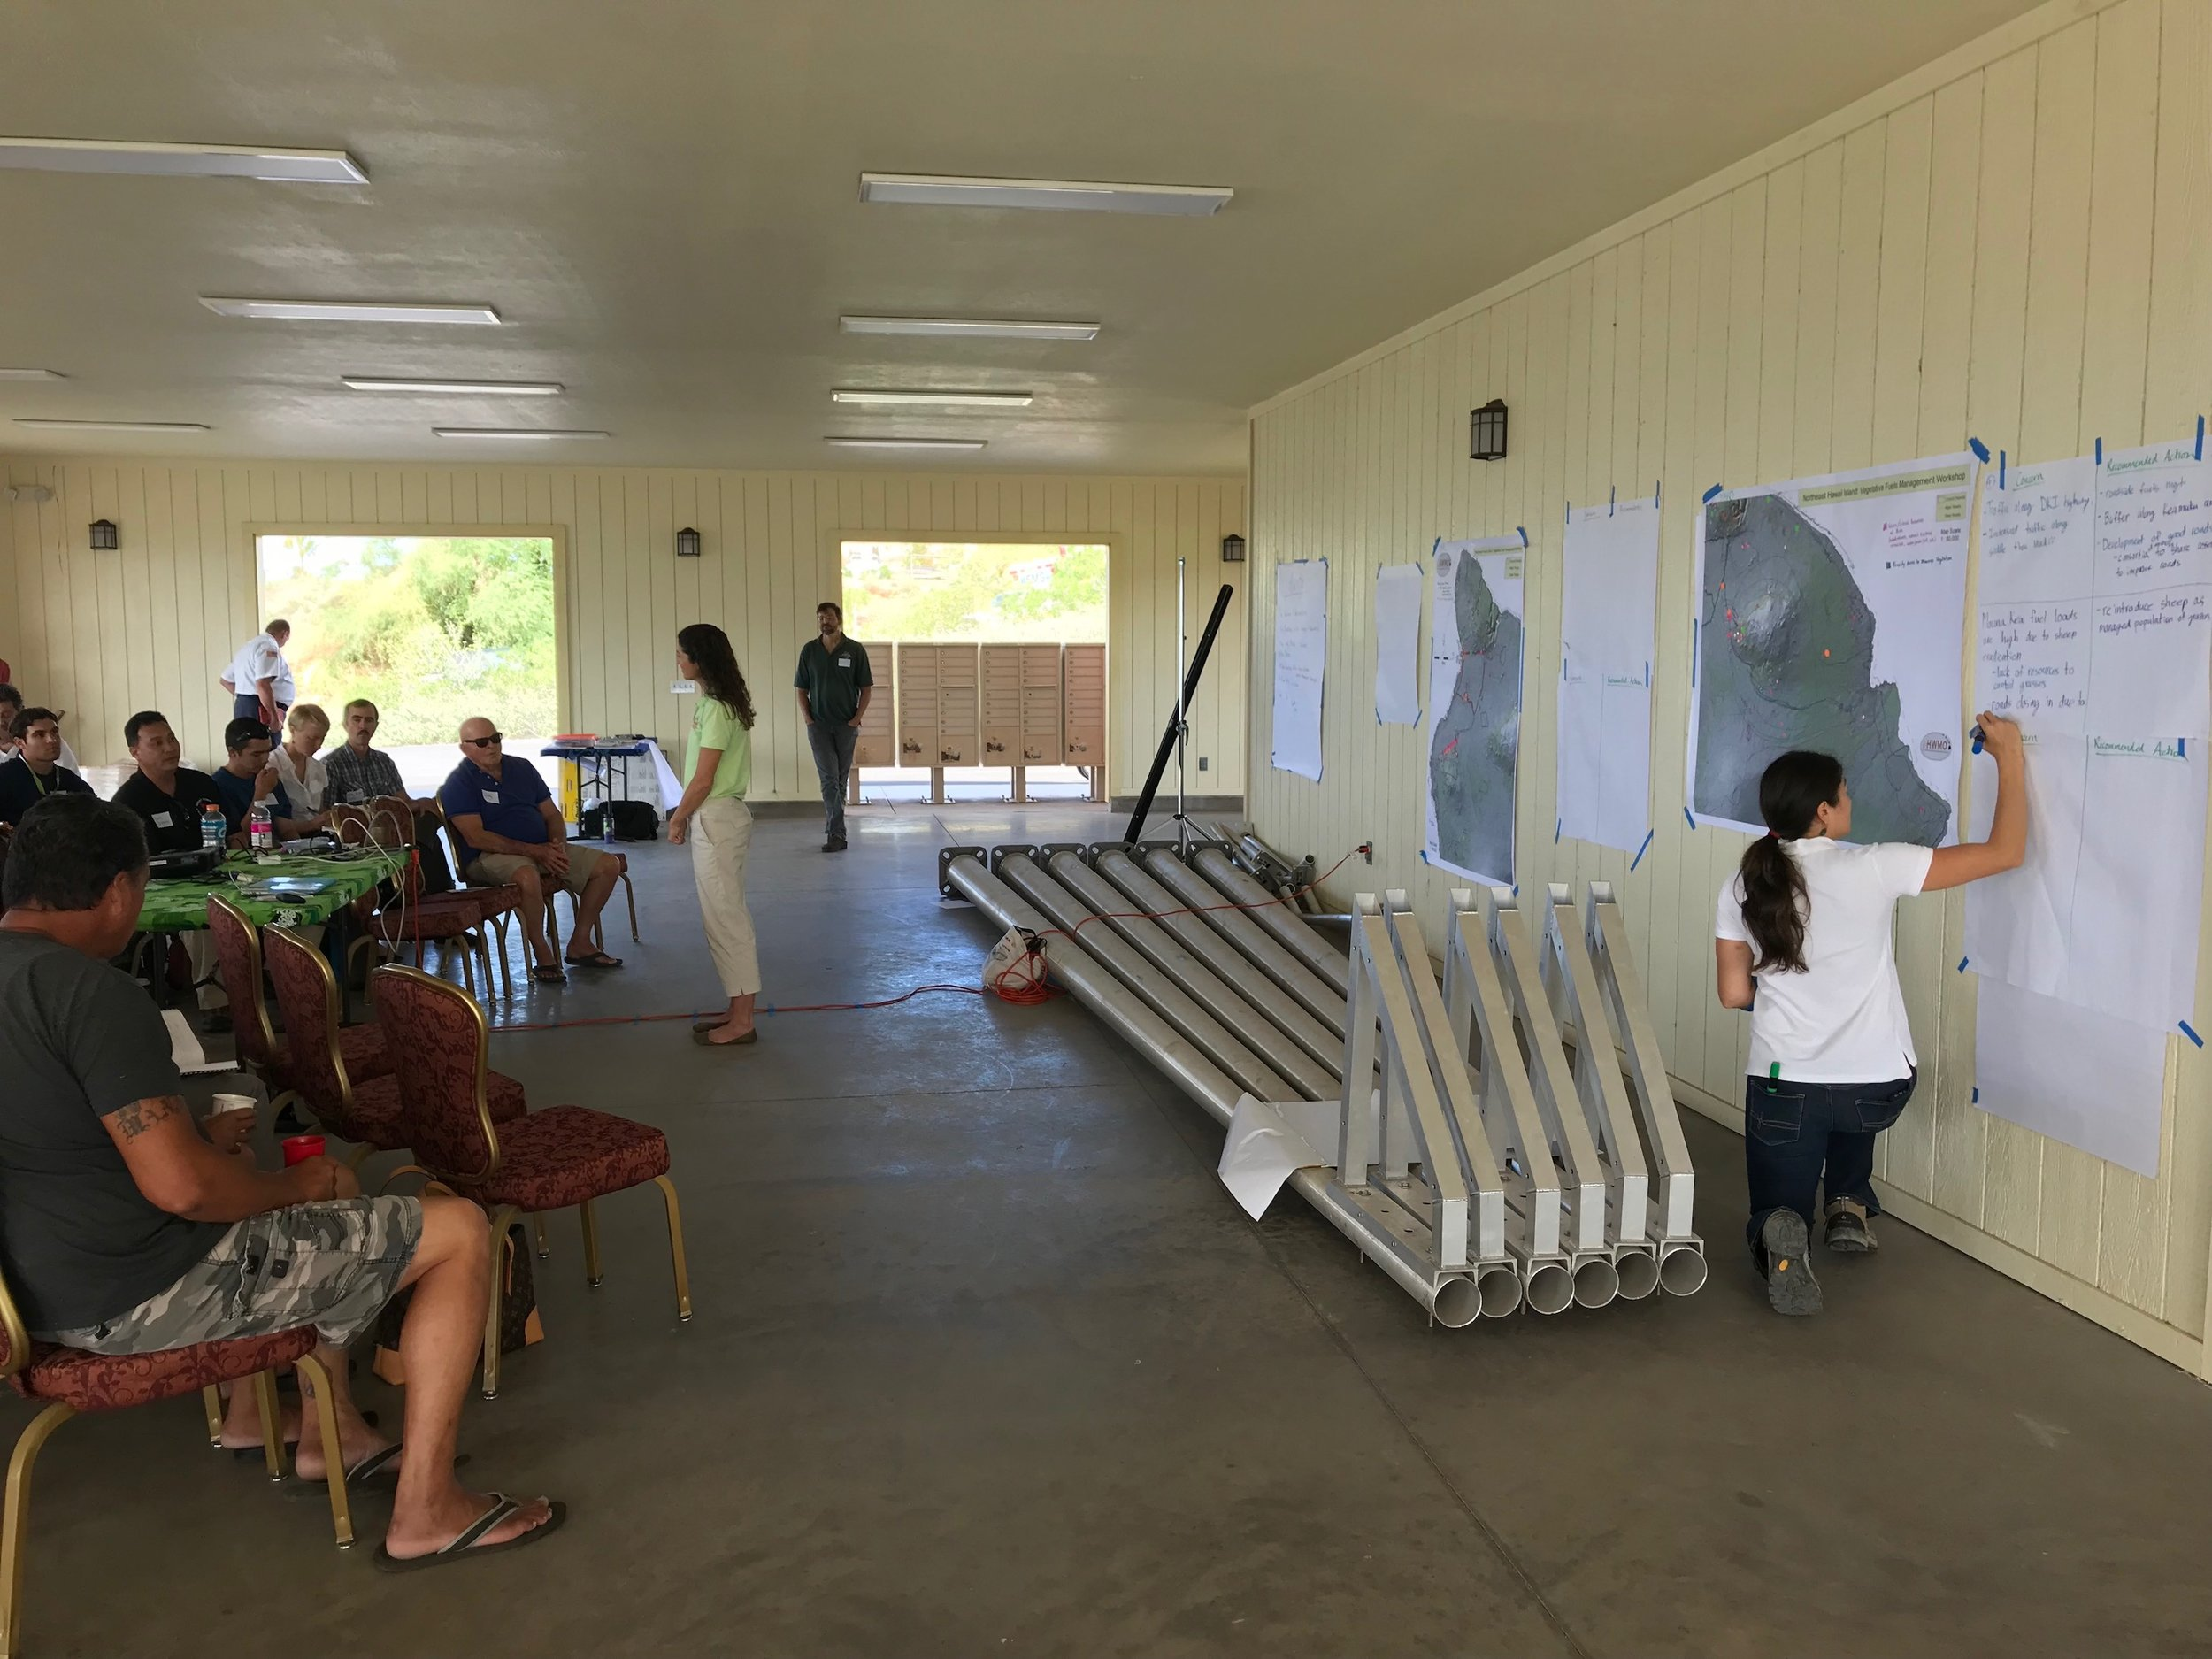 Hawaii Island Kailapa Vegetative Fuels Management Collaborative Action Planning Workshop_2_26_2019_63.jpg